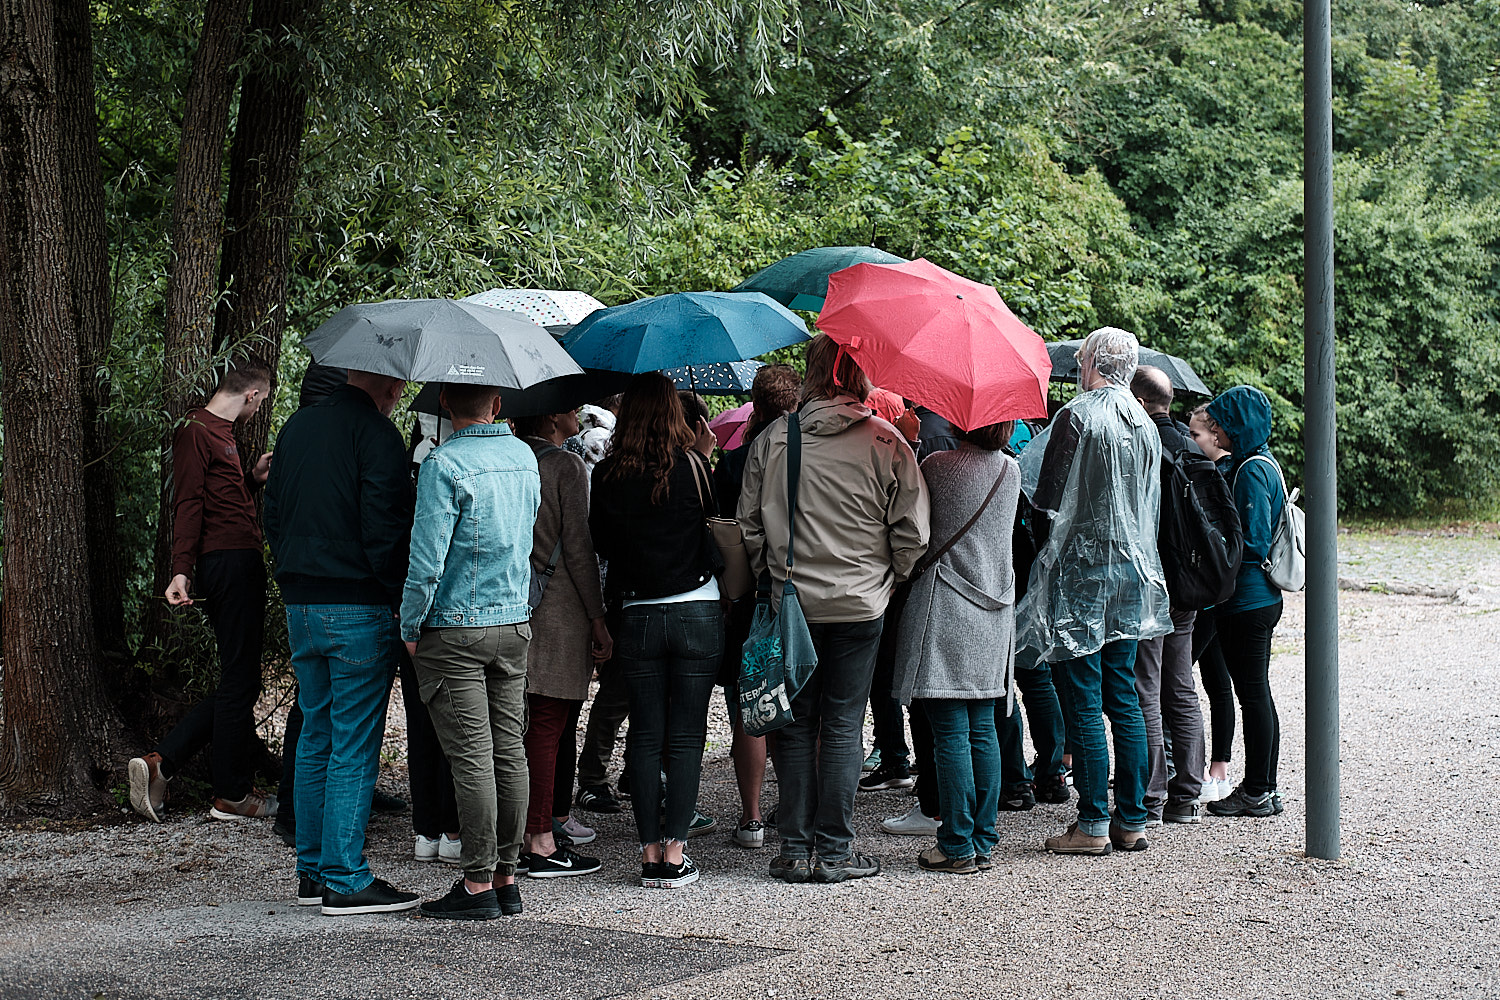 Historical site of the concentration camp of Dachau. Guided tour. Visitors gather under umbrellas around the guide.